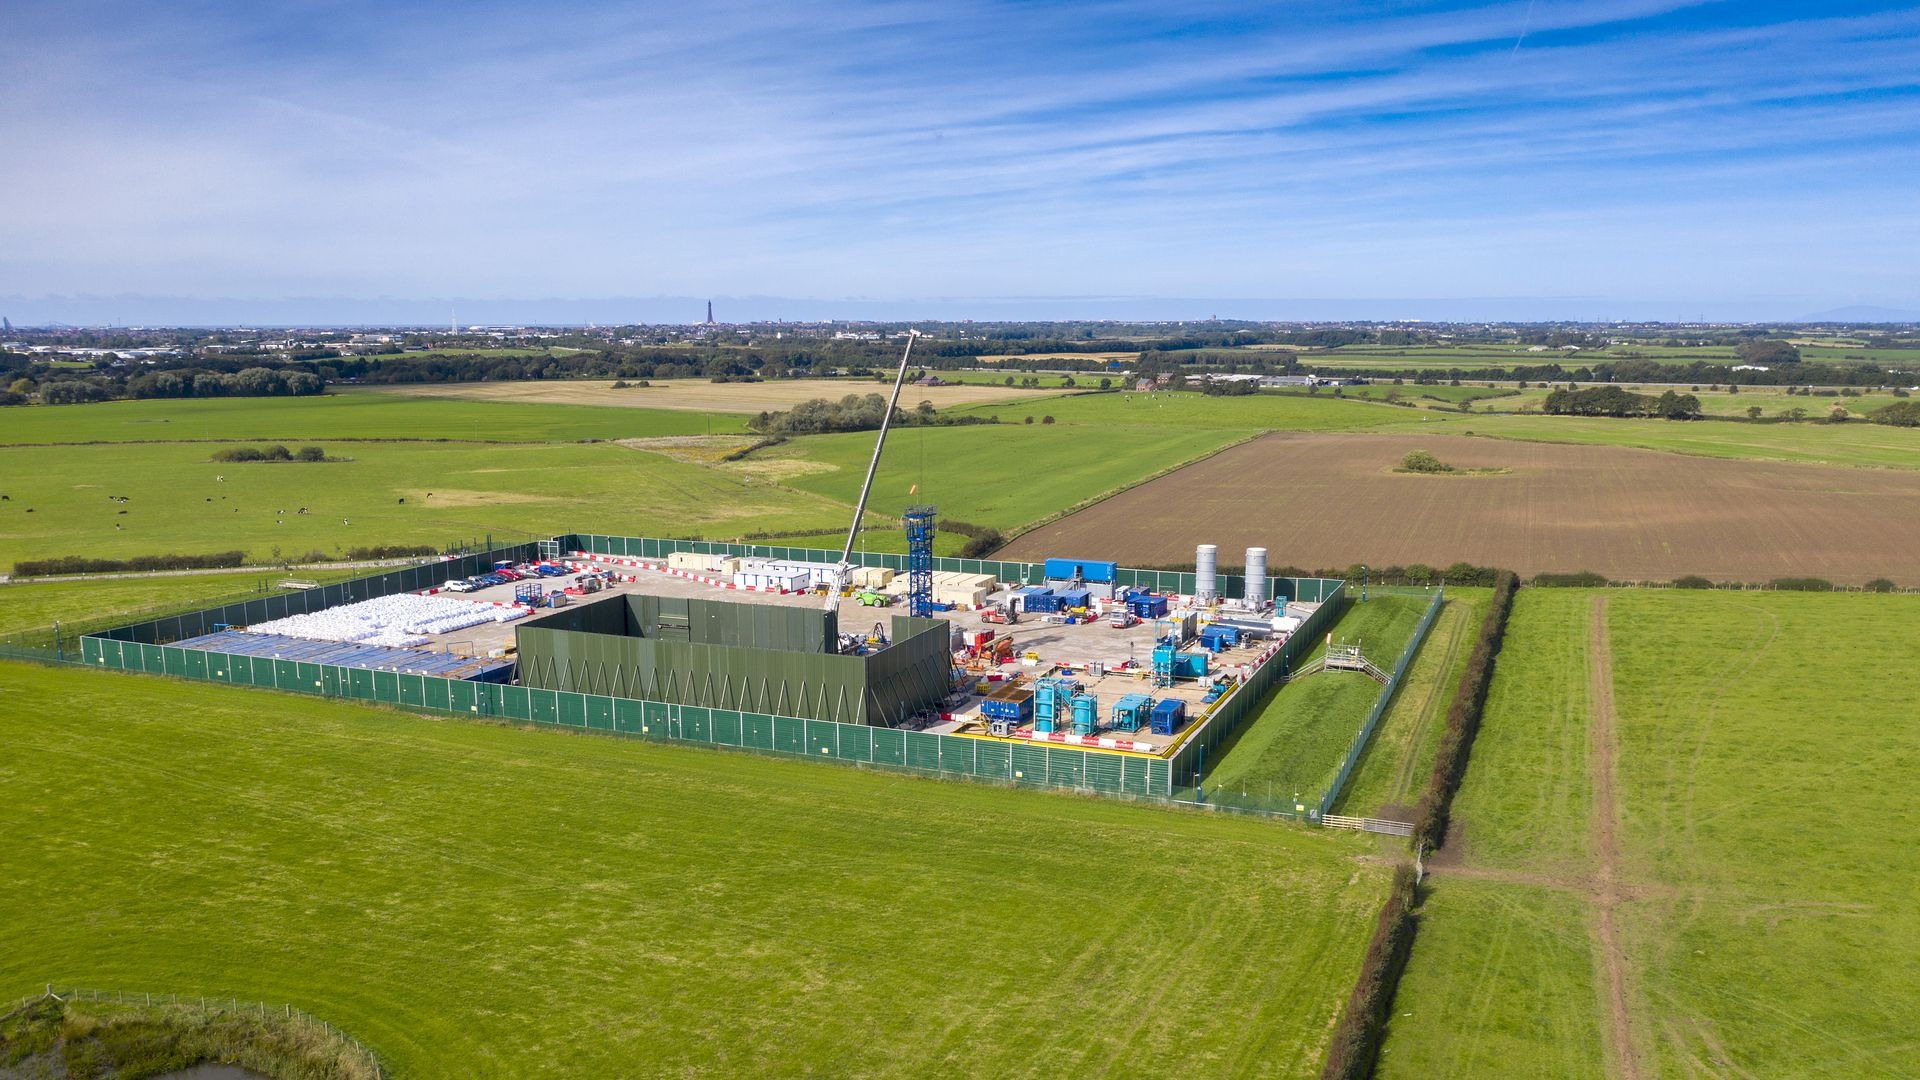 The photo shows a hydraulic fracking site in England, surrounded by verdant grass.